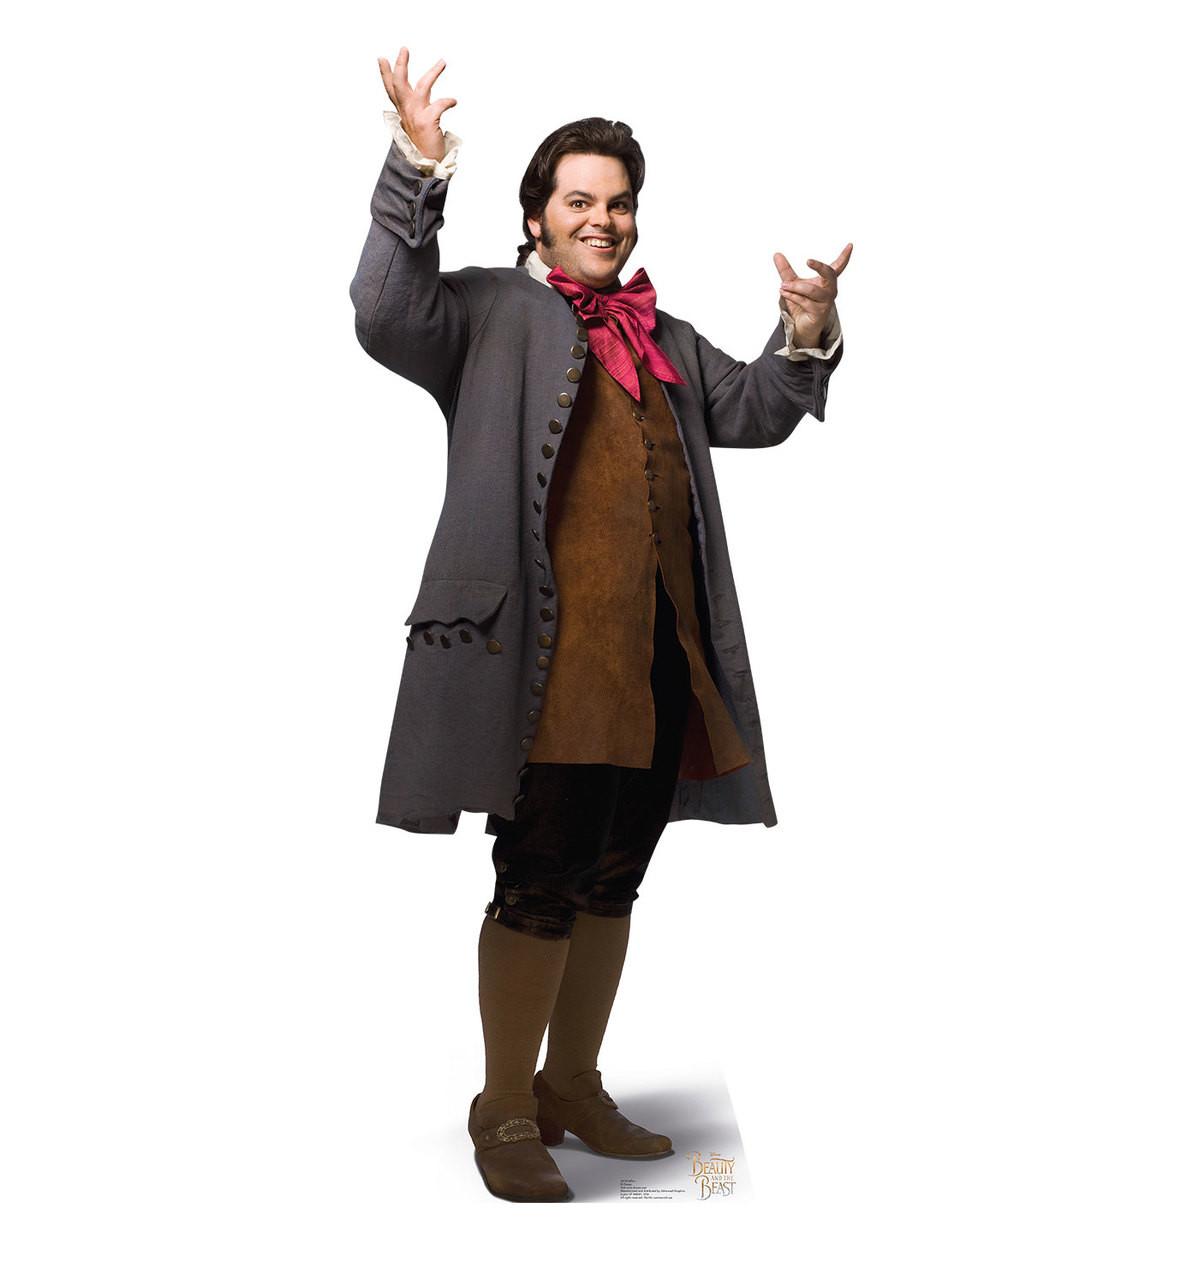 Life-size LeFou (Disney's Beauty and the Beast) Cardboard Standup 3